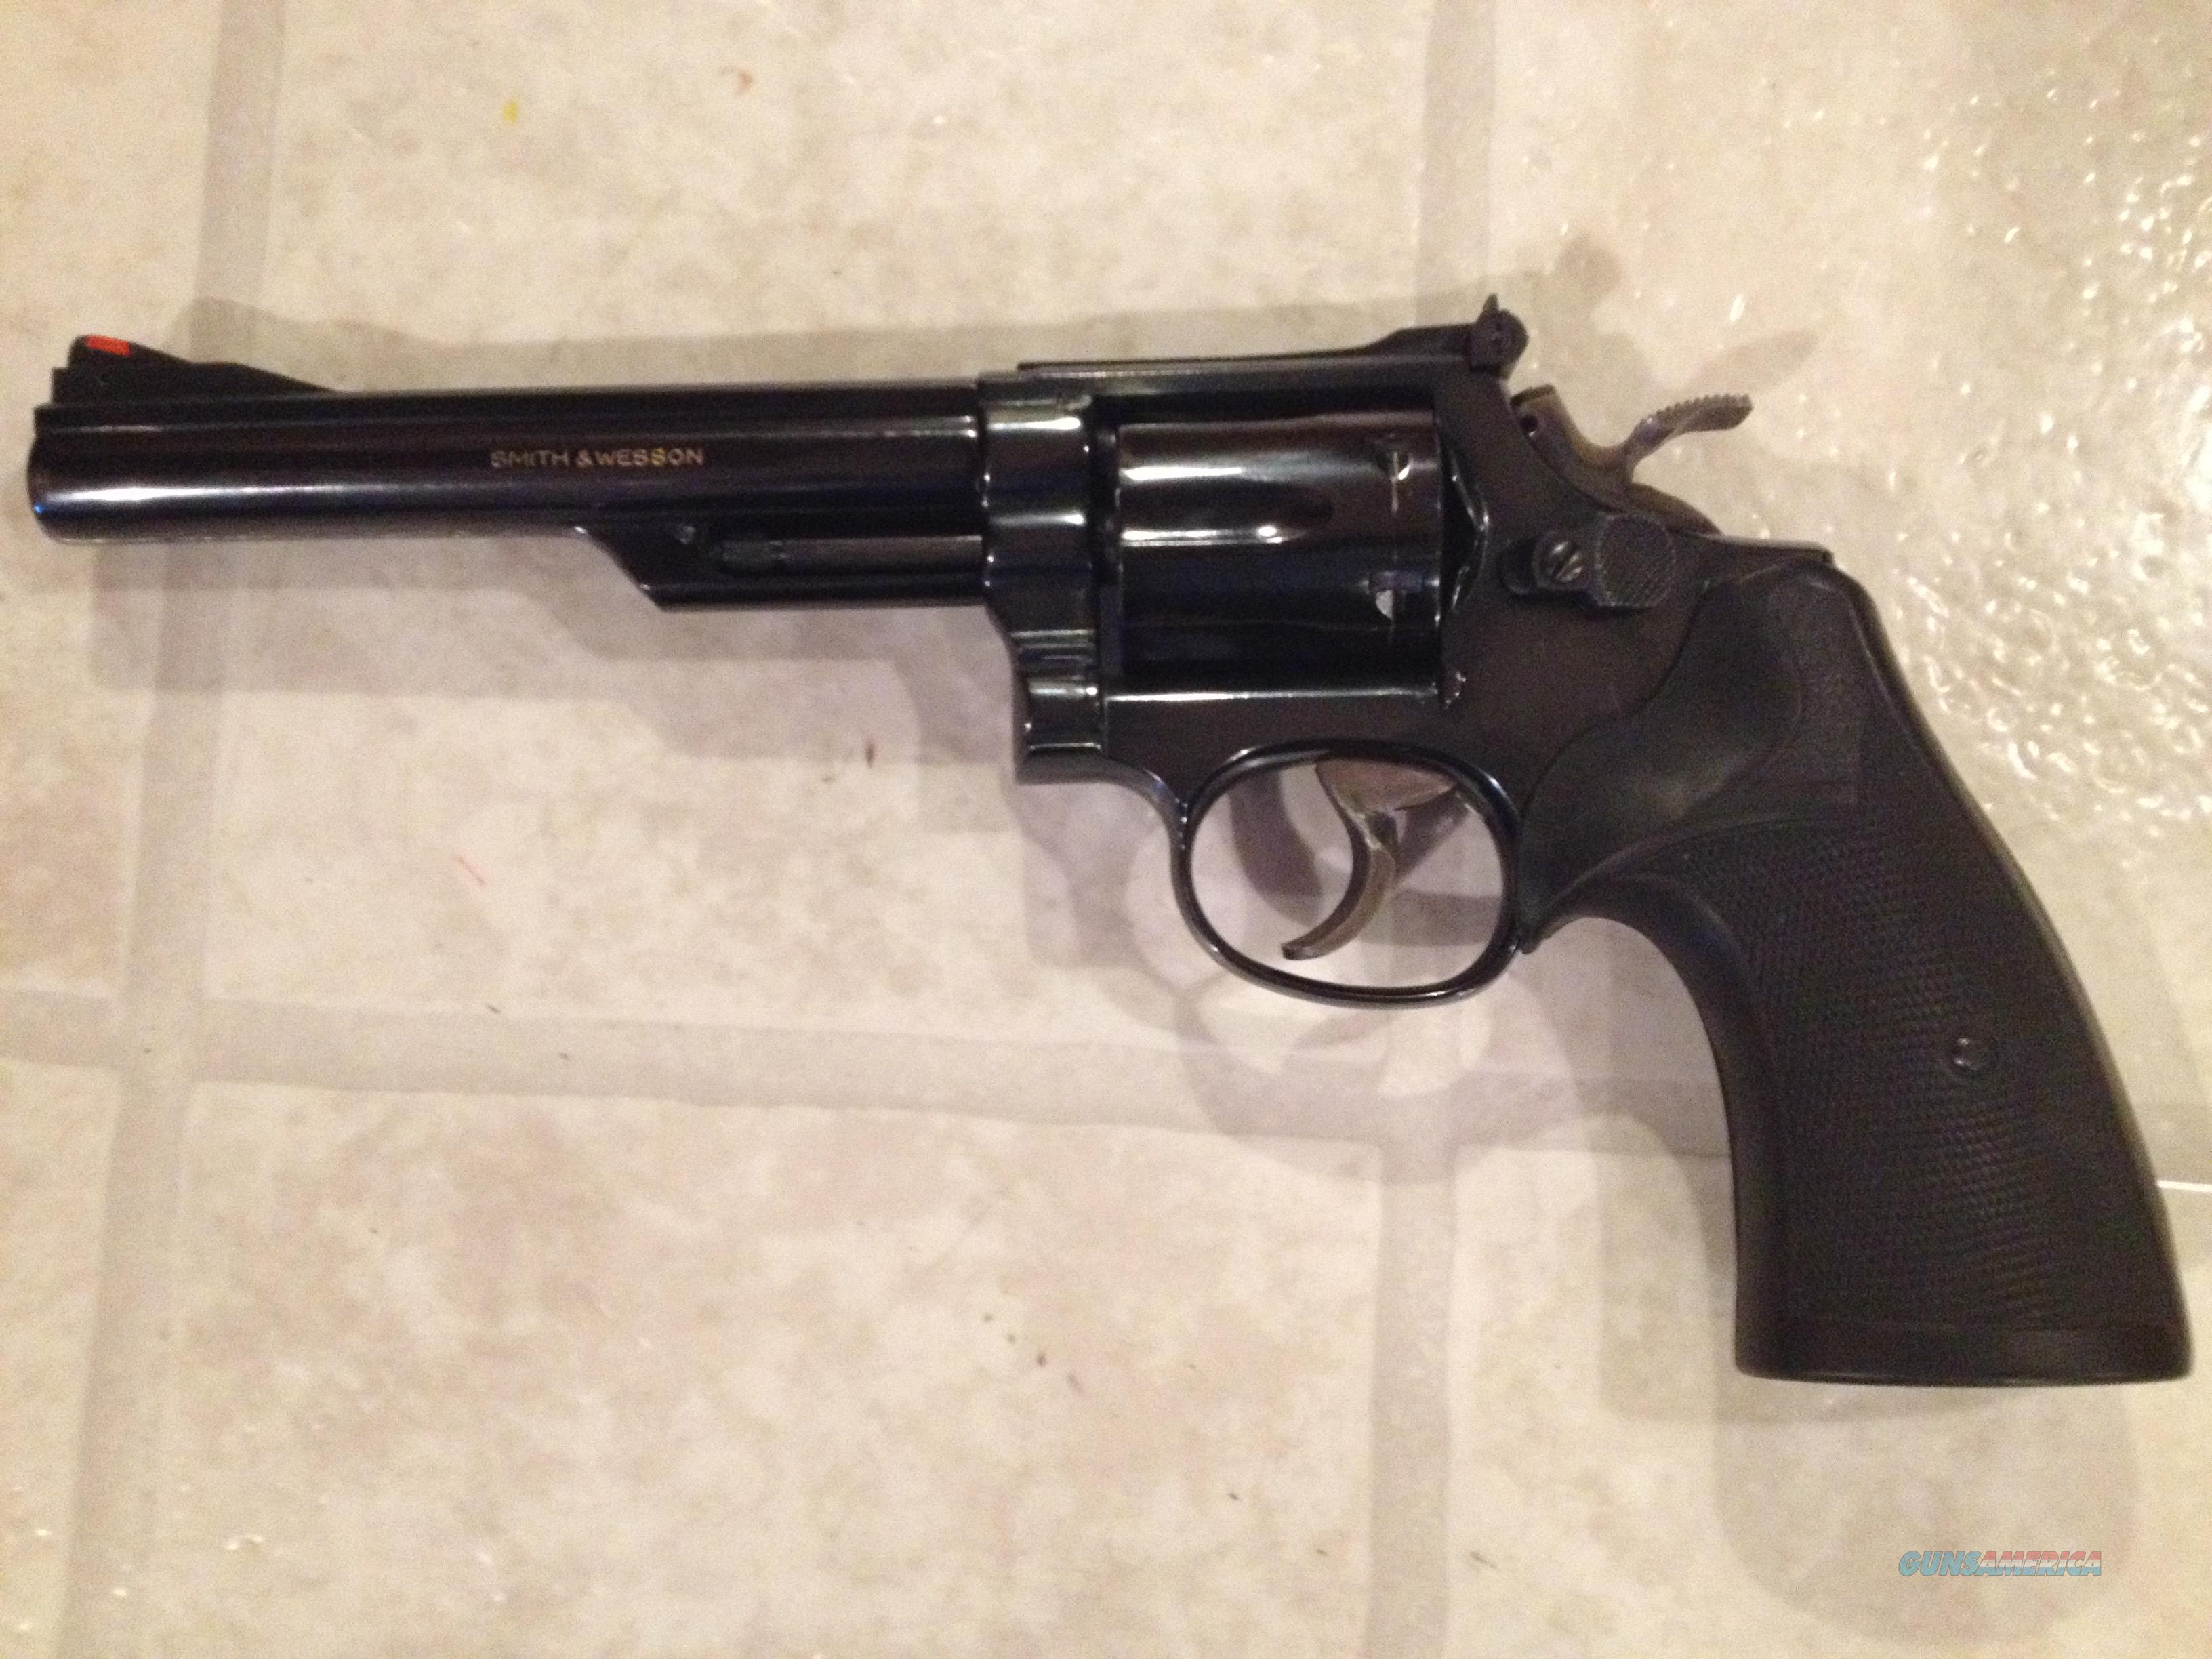 Smith & Wesson Model 19-4 - 6 inch - 357 Magnum - K Frame  Guns > Pistols > Smith & Wesson Revolvers > Full Frame Revolver